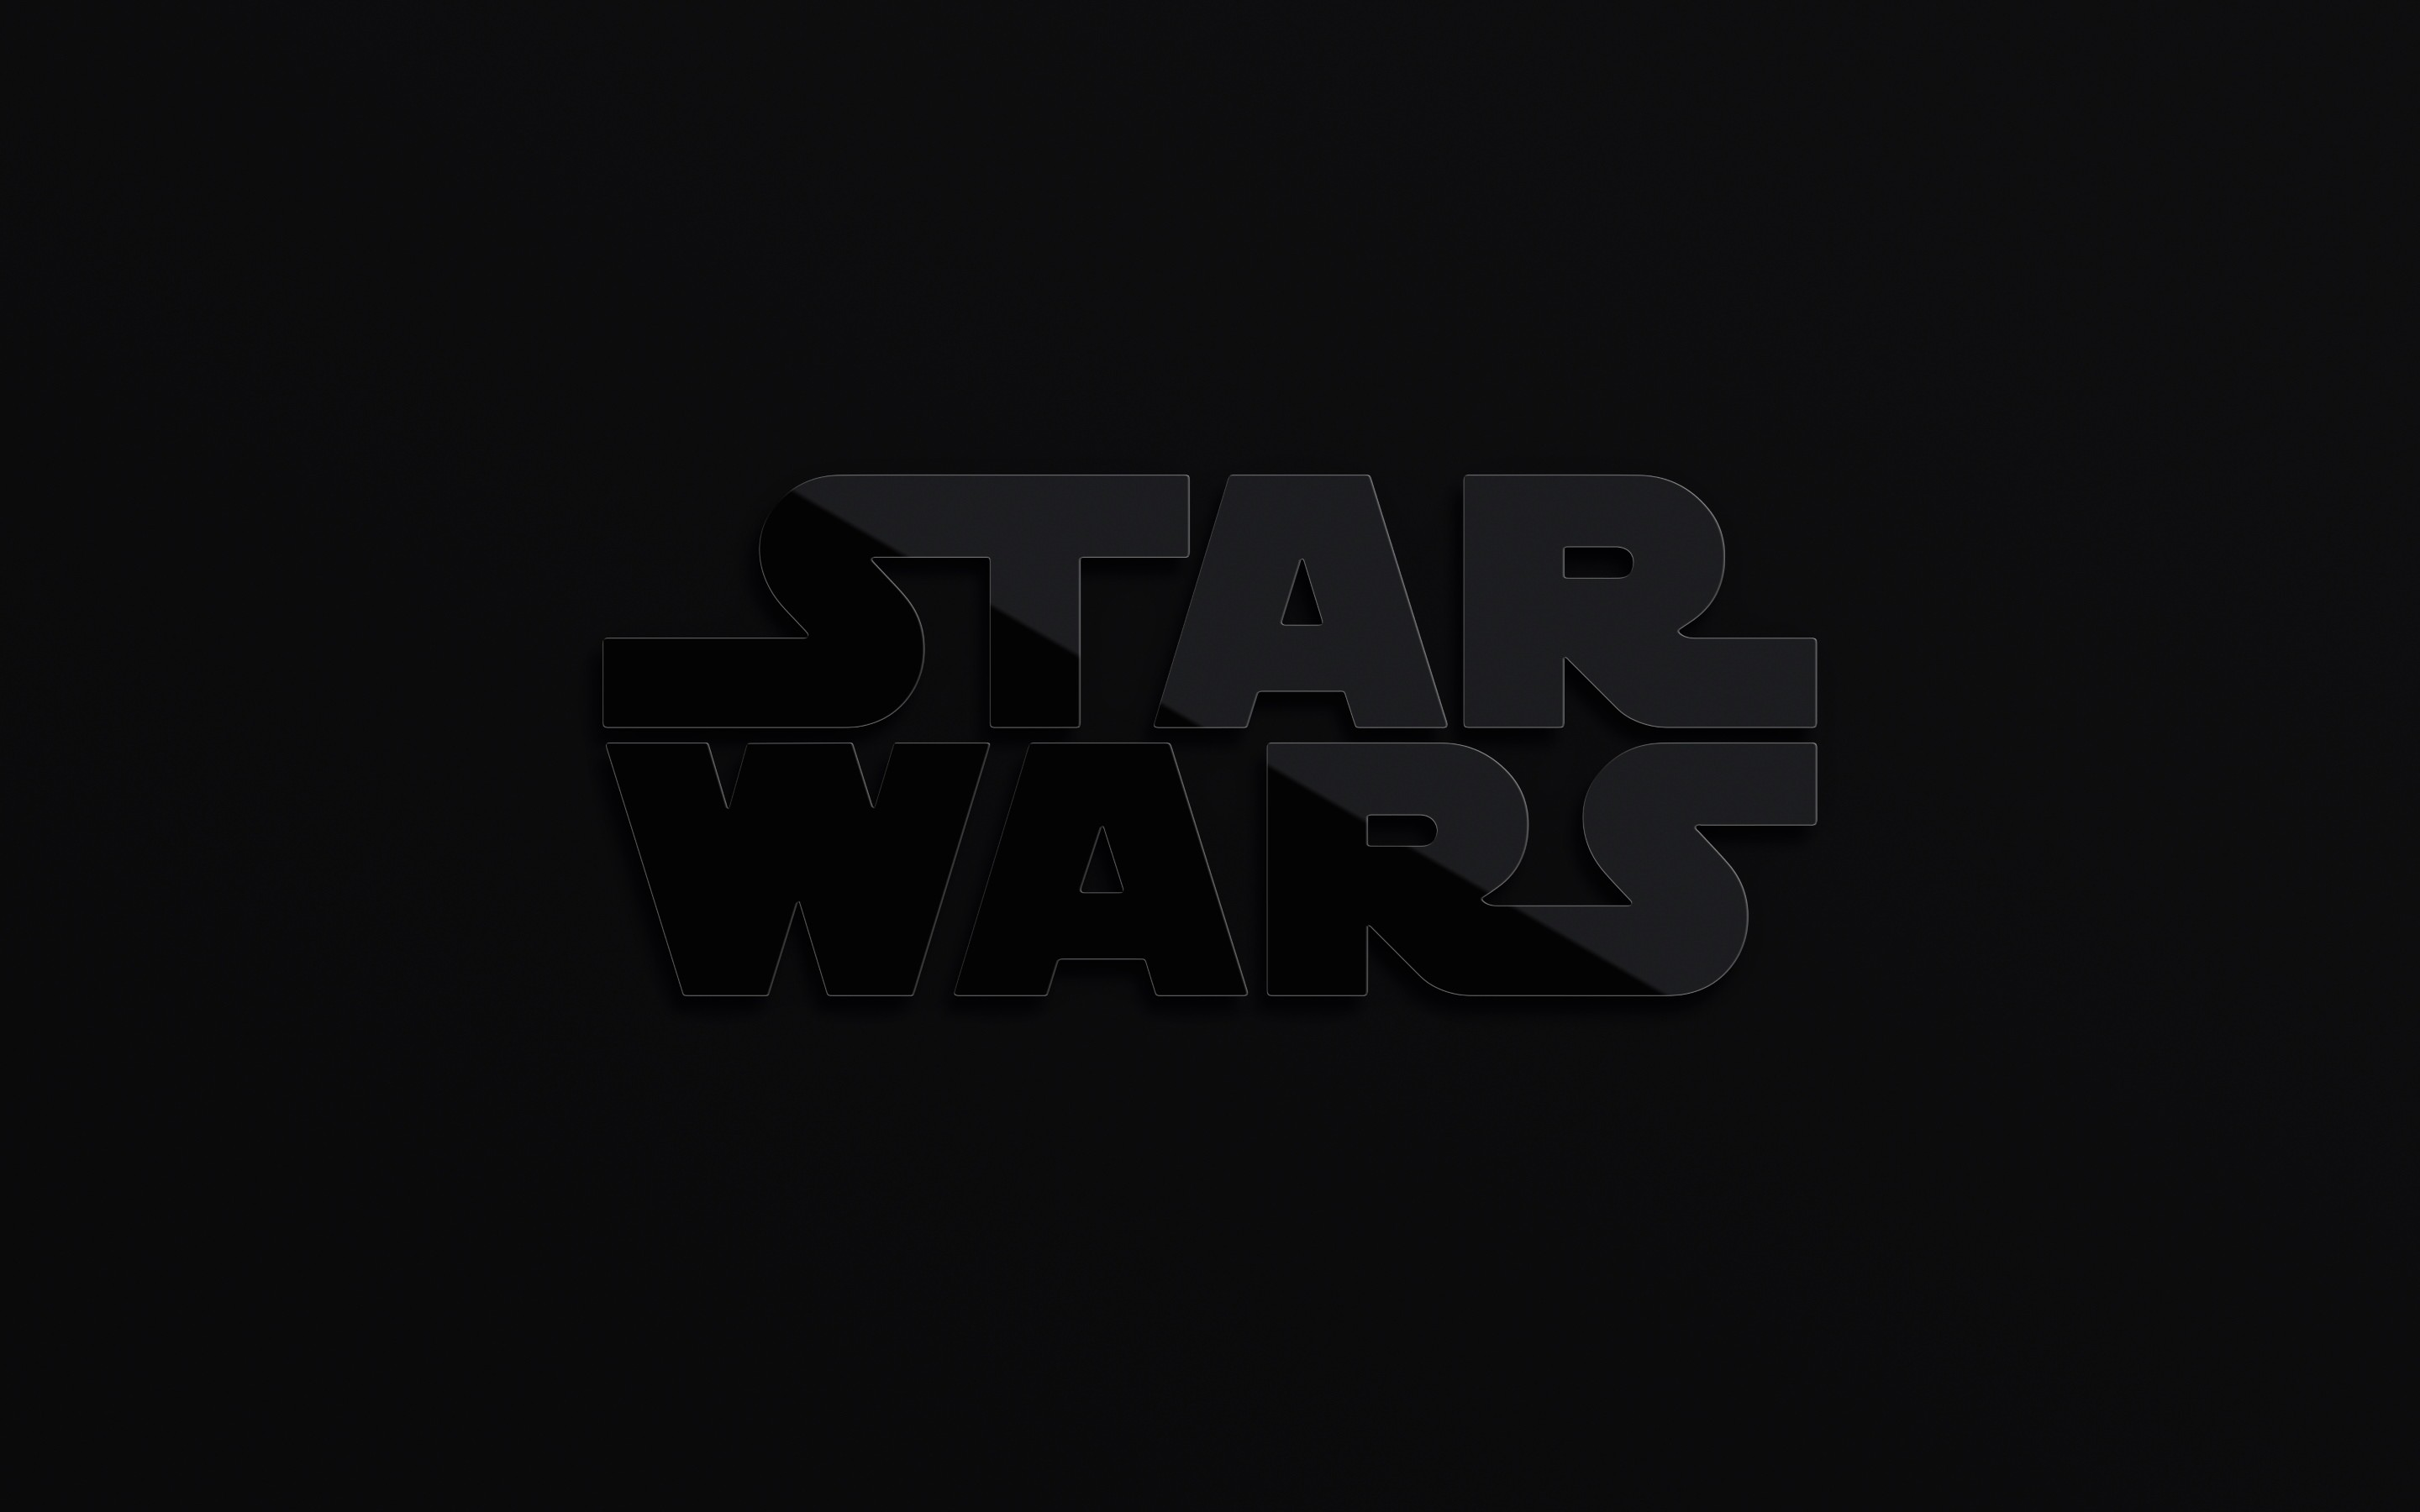 Star Wars HD Wallpaper Phone (63+ Images